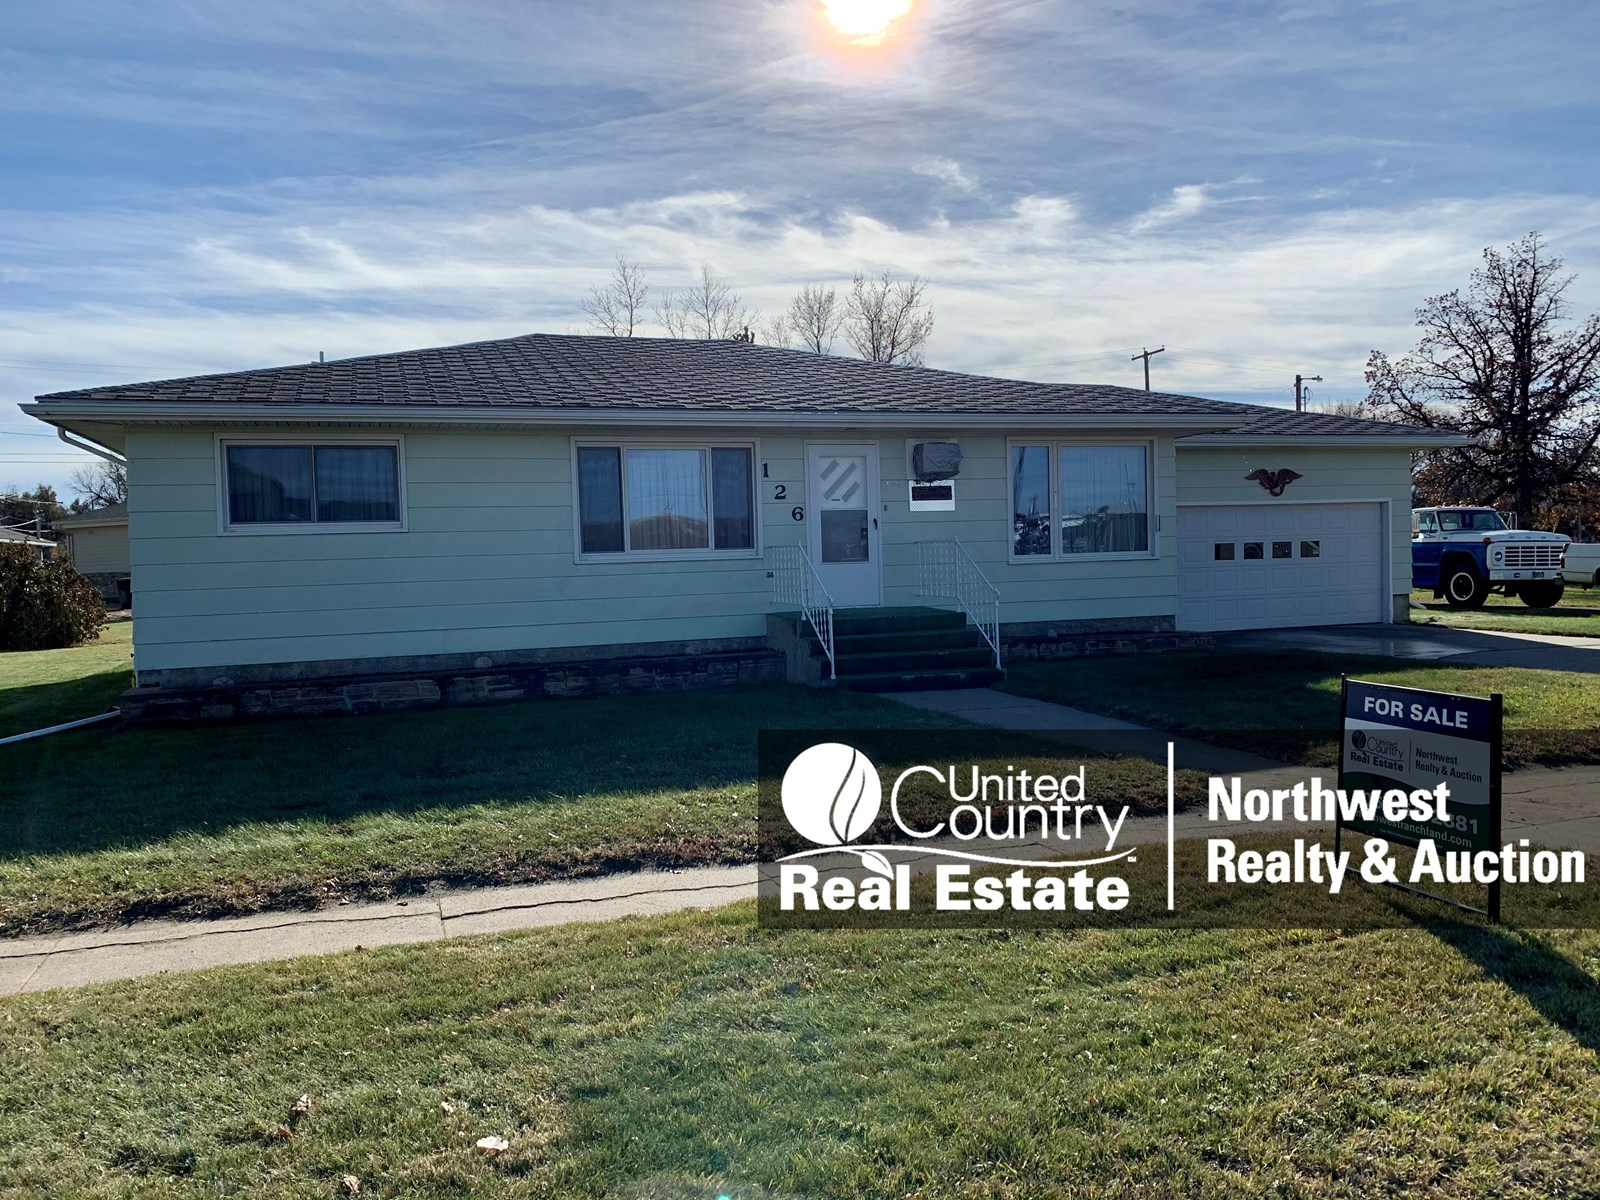 Residential Home in Malta MT Centrally Located Near Downtown